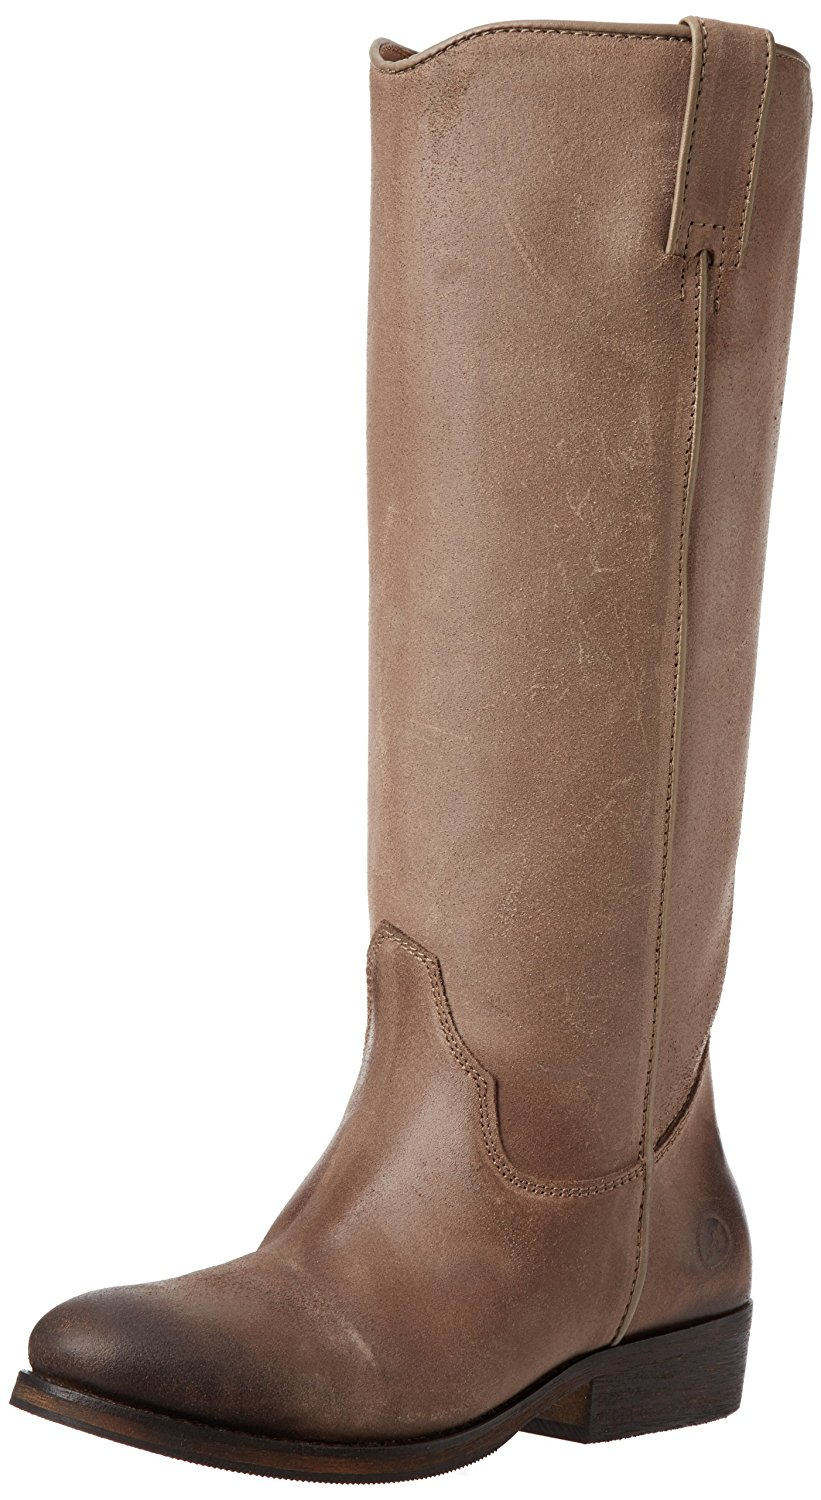 Diba True Women's Bronx Tam Mee Tall Leather Boots Taupe Rockleat (39.0 EU   9.0M US) by